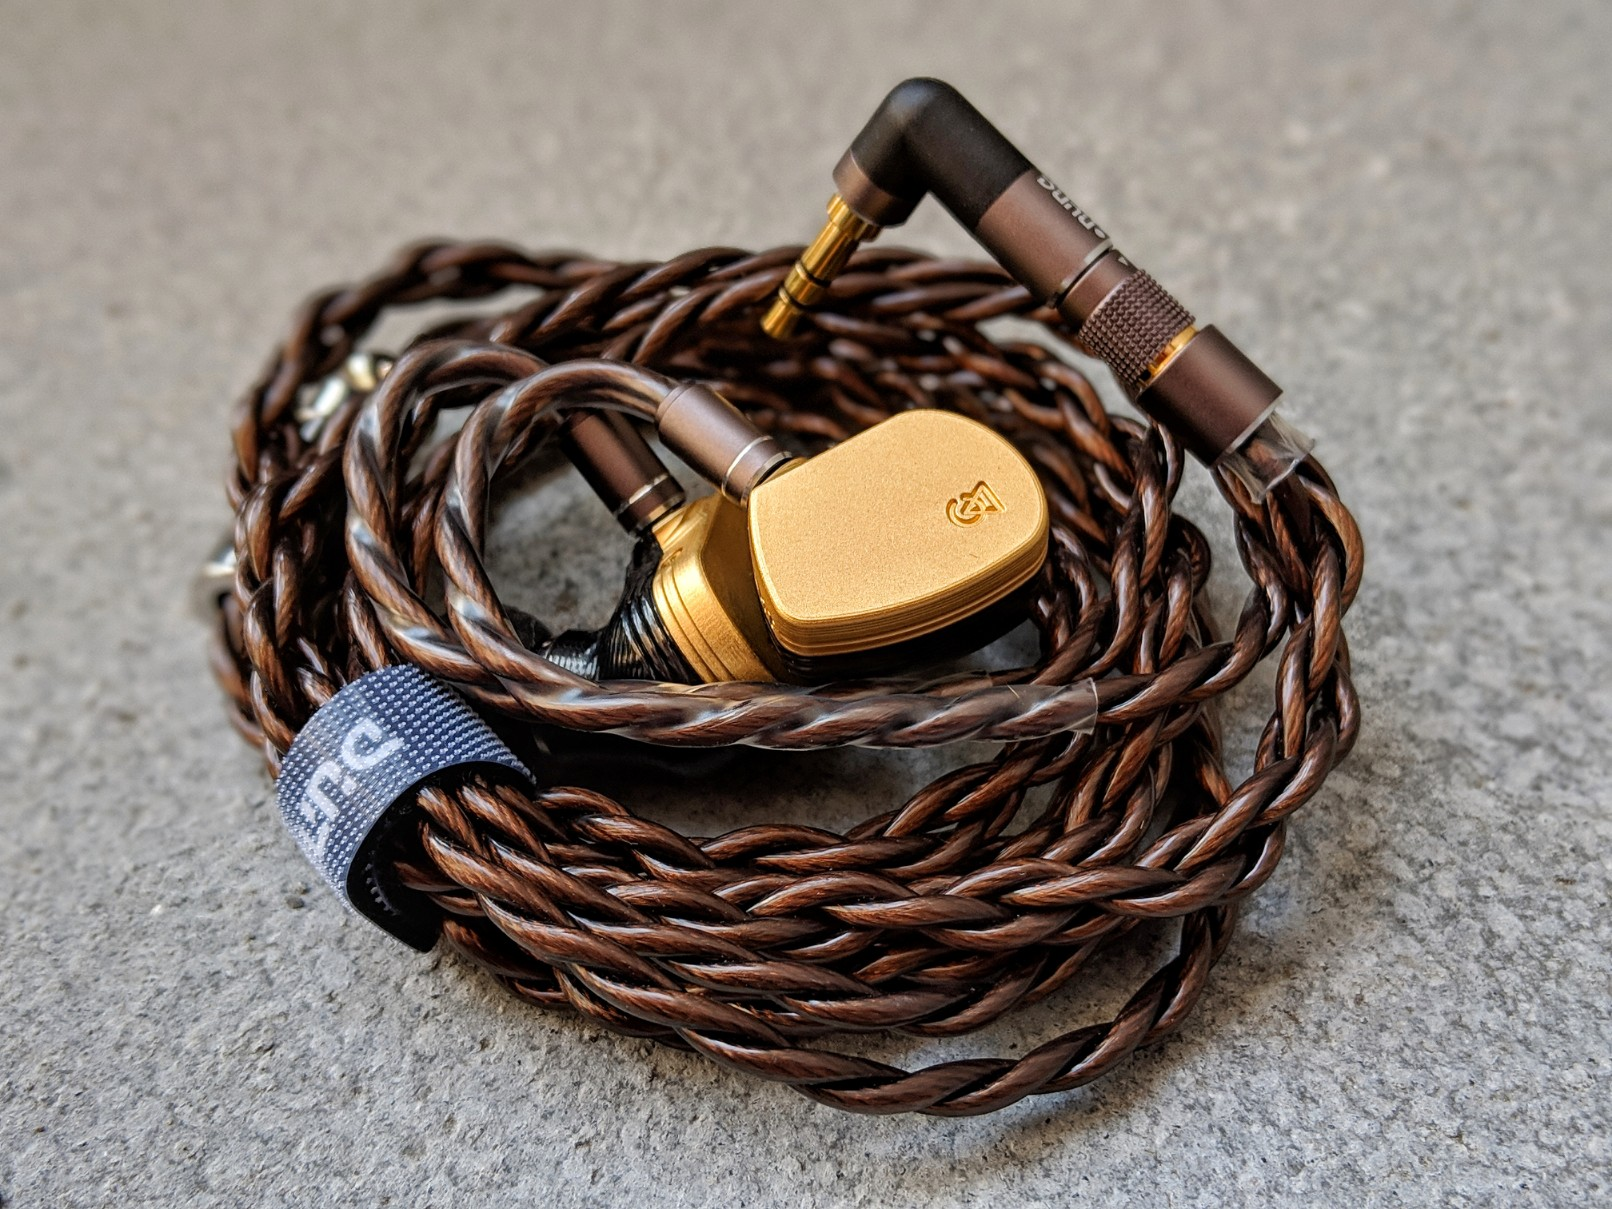 The hulk cable by dune with the Campfire Audio Solaris IEM's